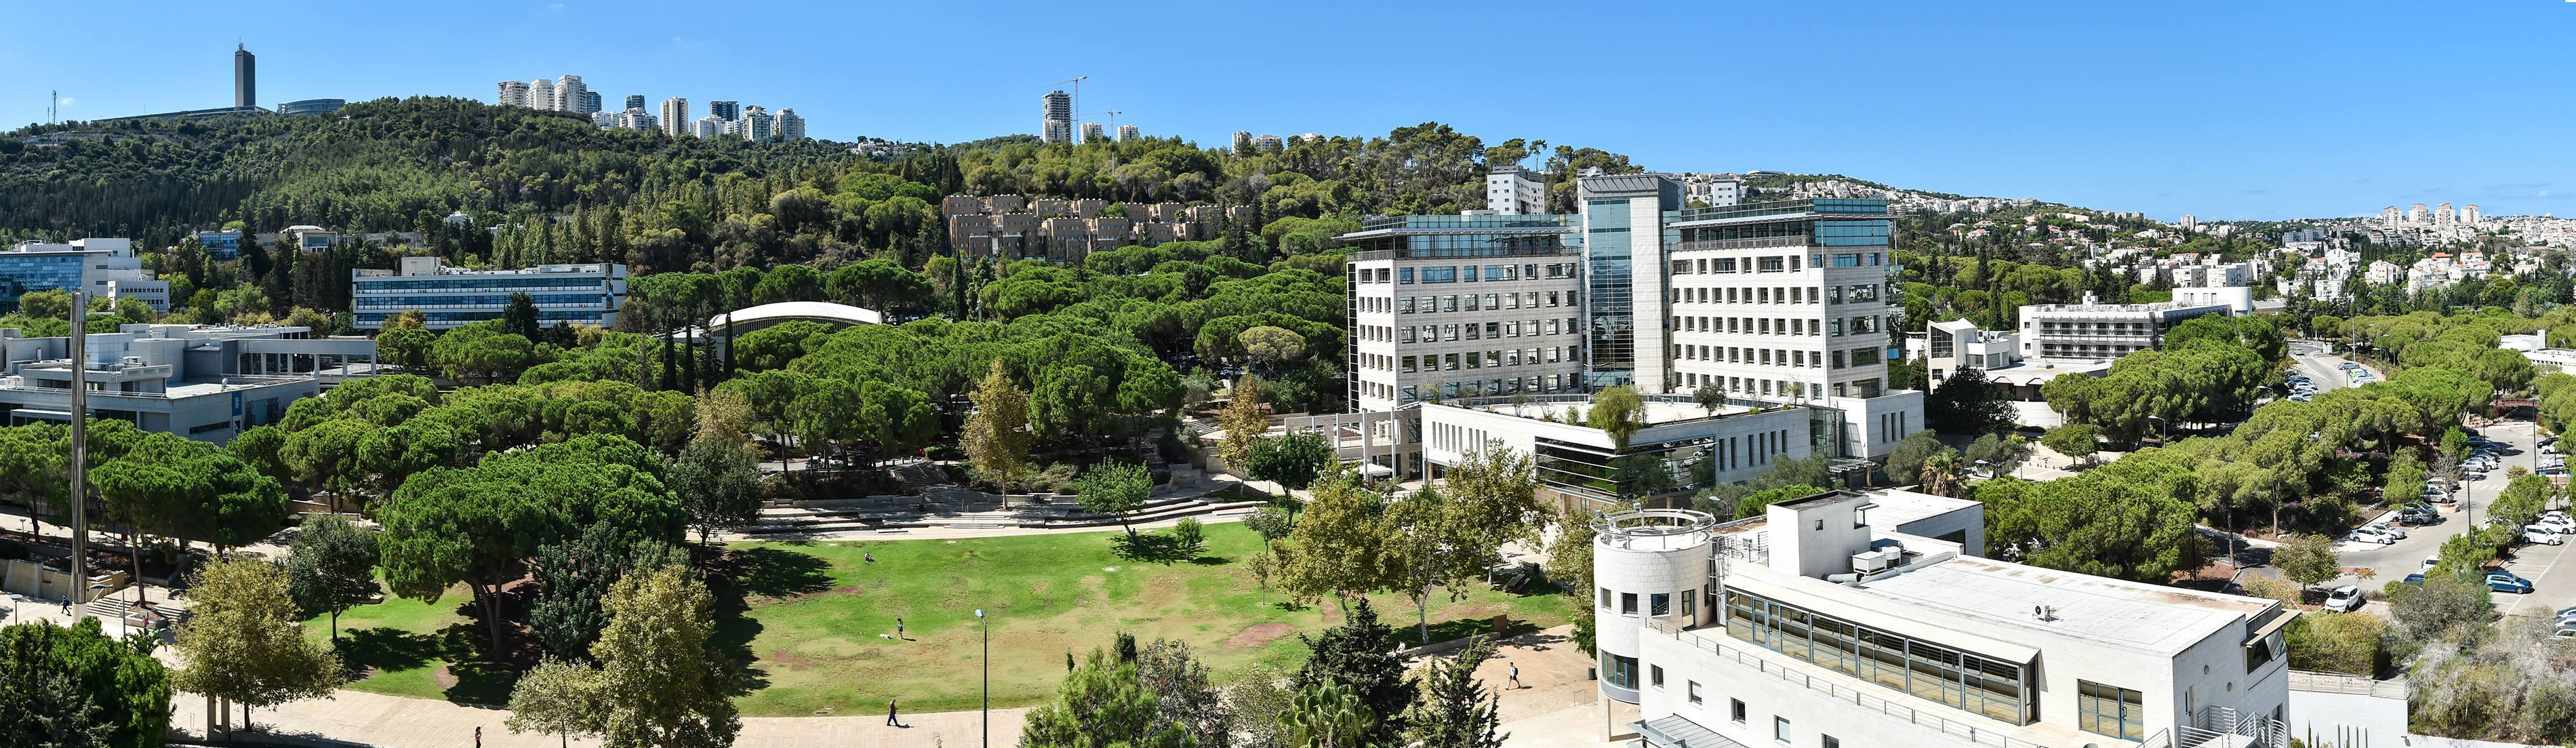 Technion Israel institute of Technology Campus